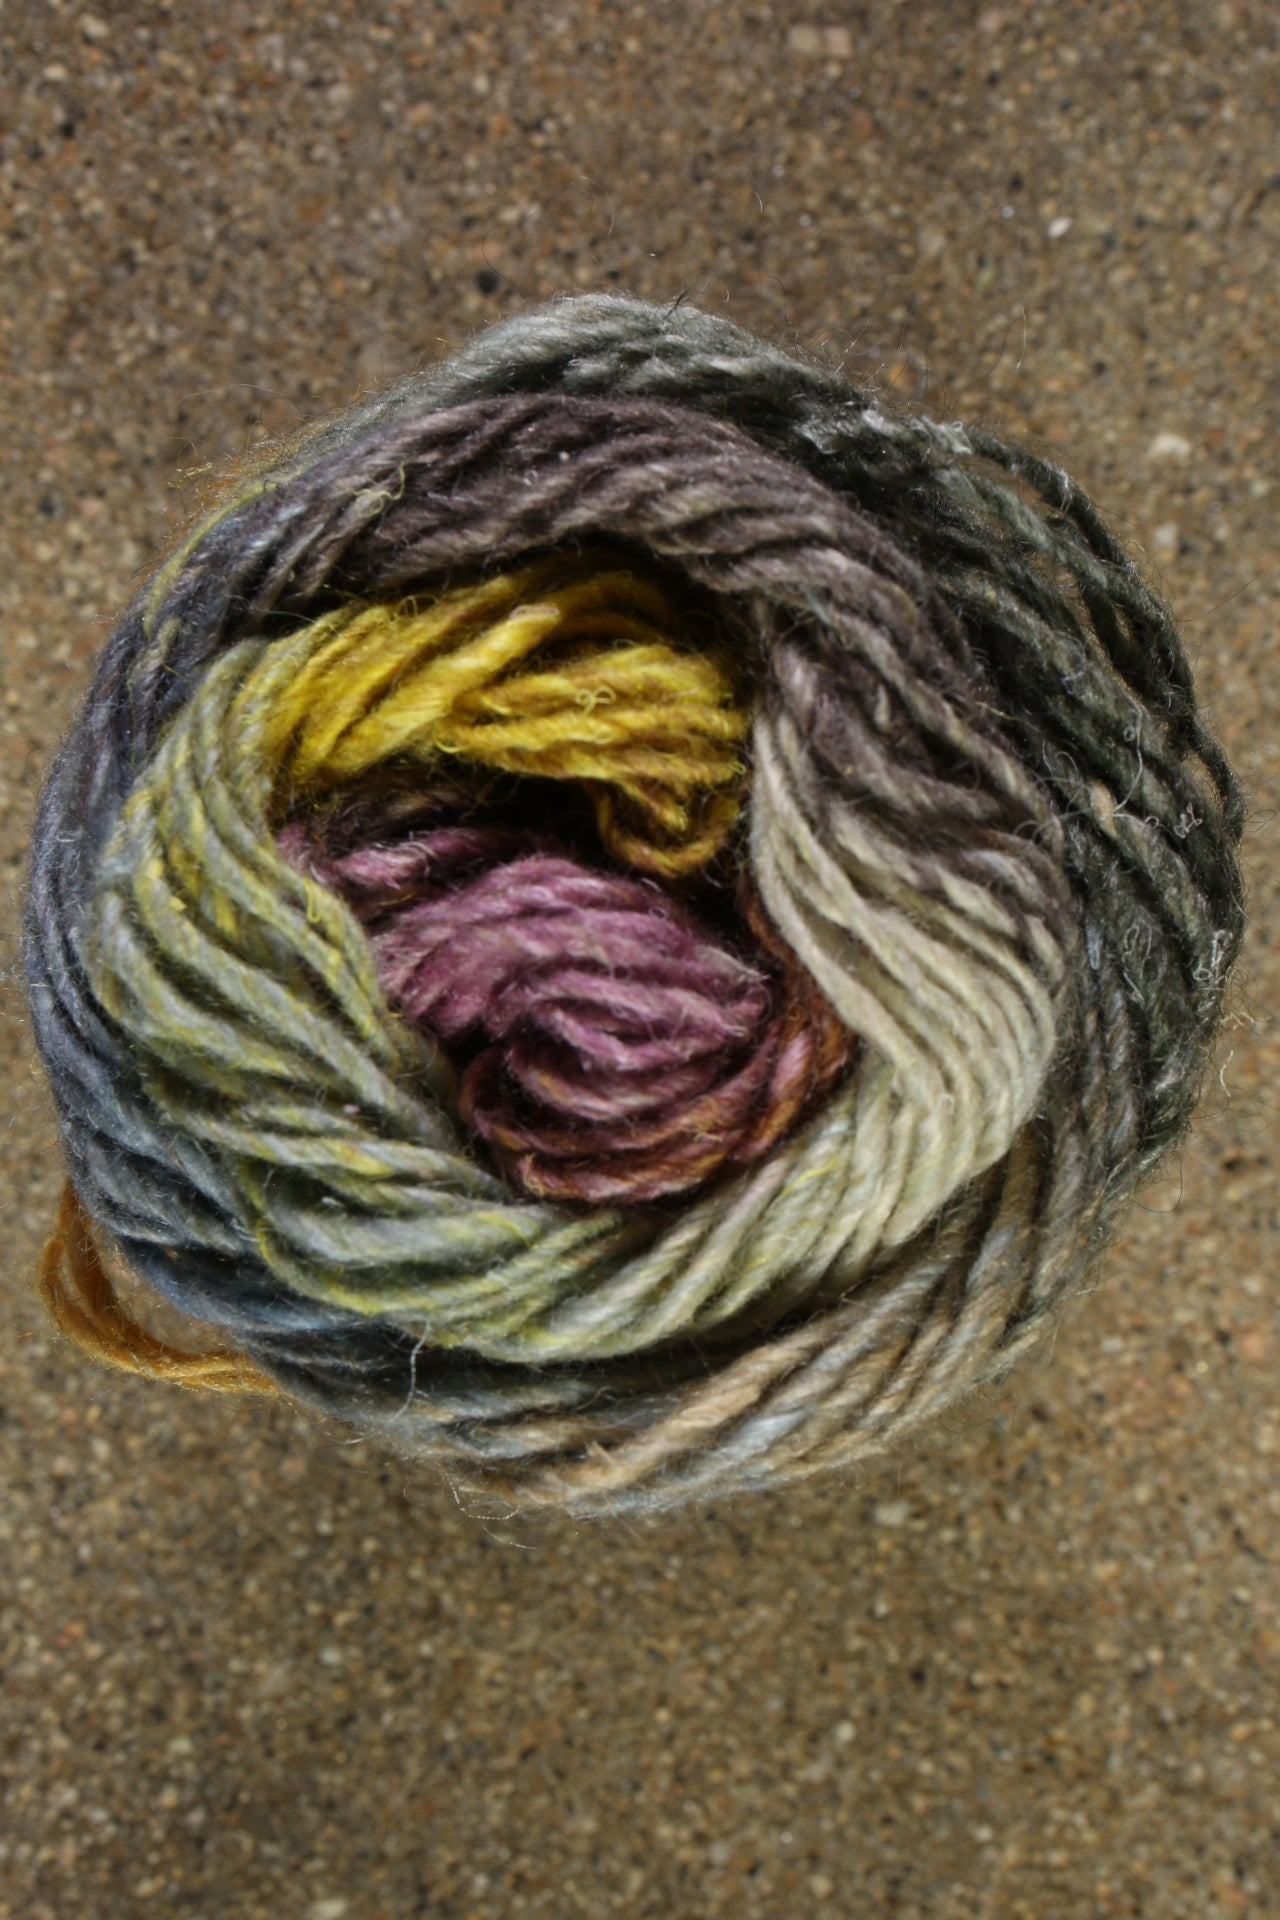 Noro Silk Garden – The Knitting Tree, L.A.